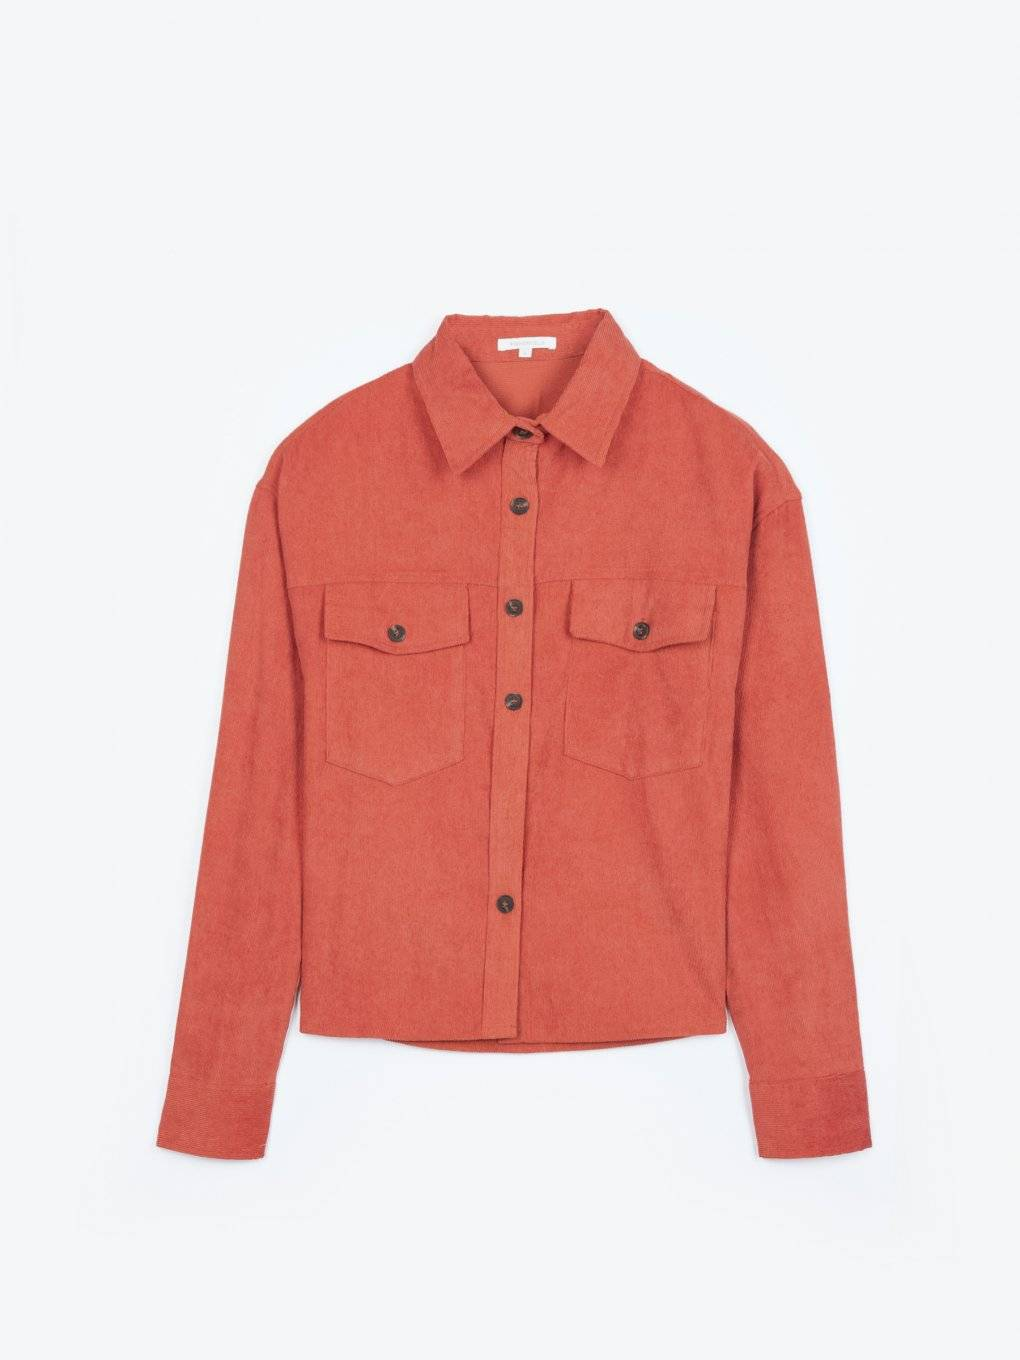 Corduroy boxy shirt with chest pockets